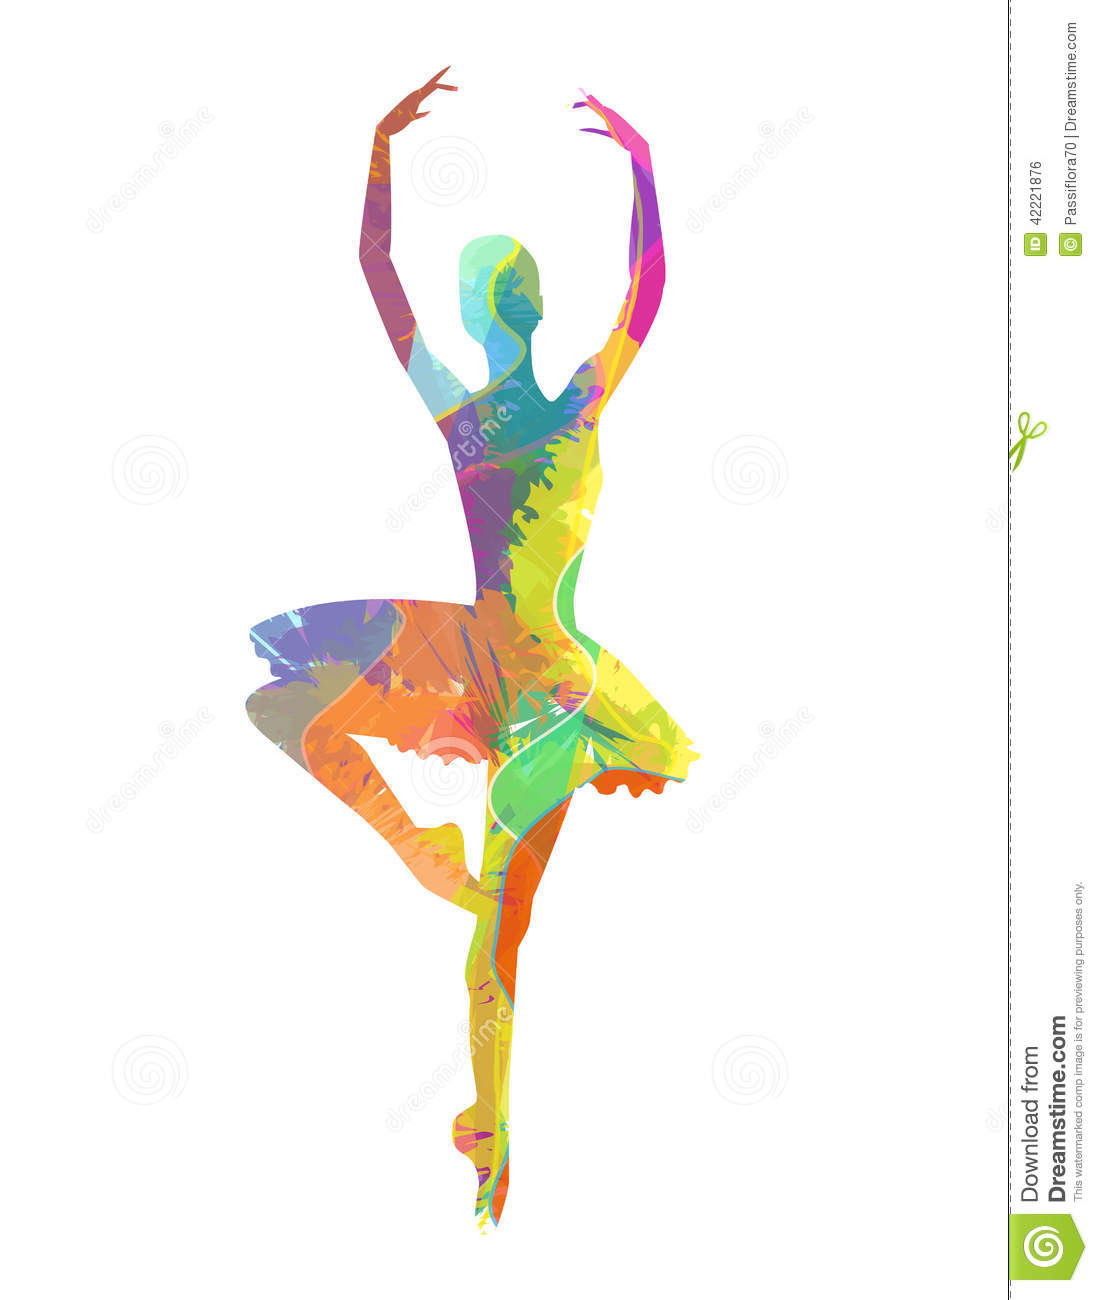 ffdc91277 Abstract vector silhouette dancing girl. Designers Also Selected These Stock  Illustrations